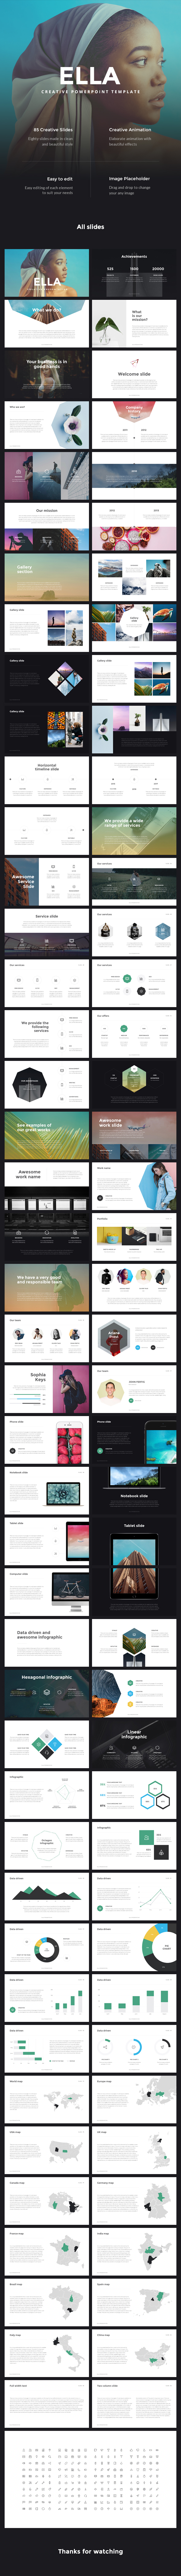 ELLA Creative PowerPoint Template - Creative PowerPoint Templates